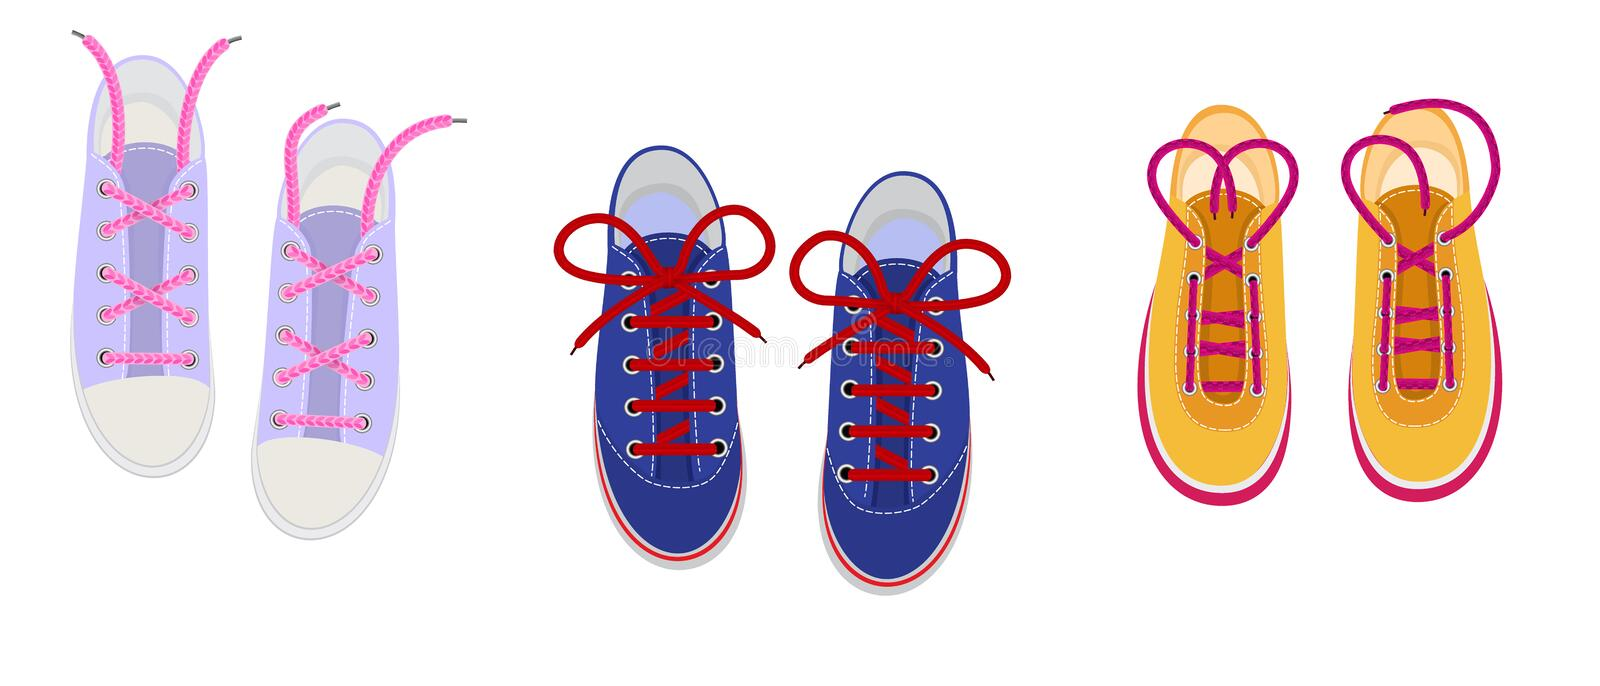 Shoelaces on snickers vector shoestring or shoe-laces and fashion accessory for footwear or footgear illustration set of. Shoes strings knot or ropeisolated on stock illustration